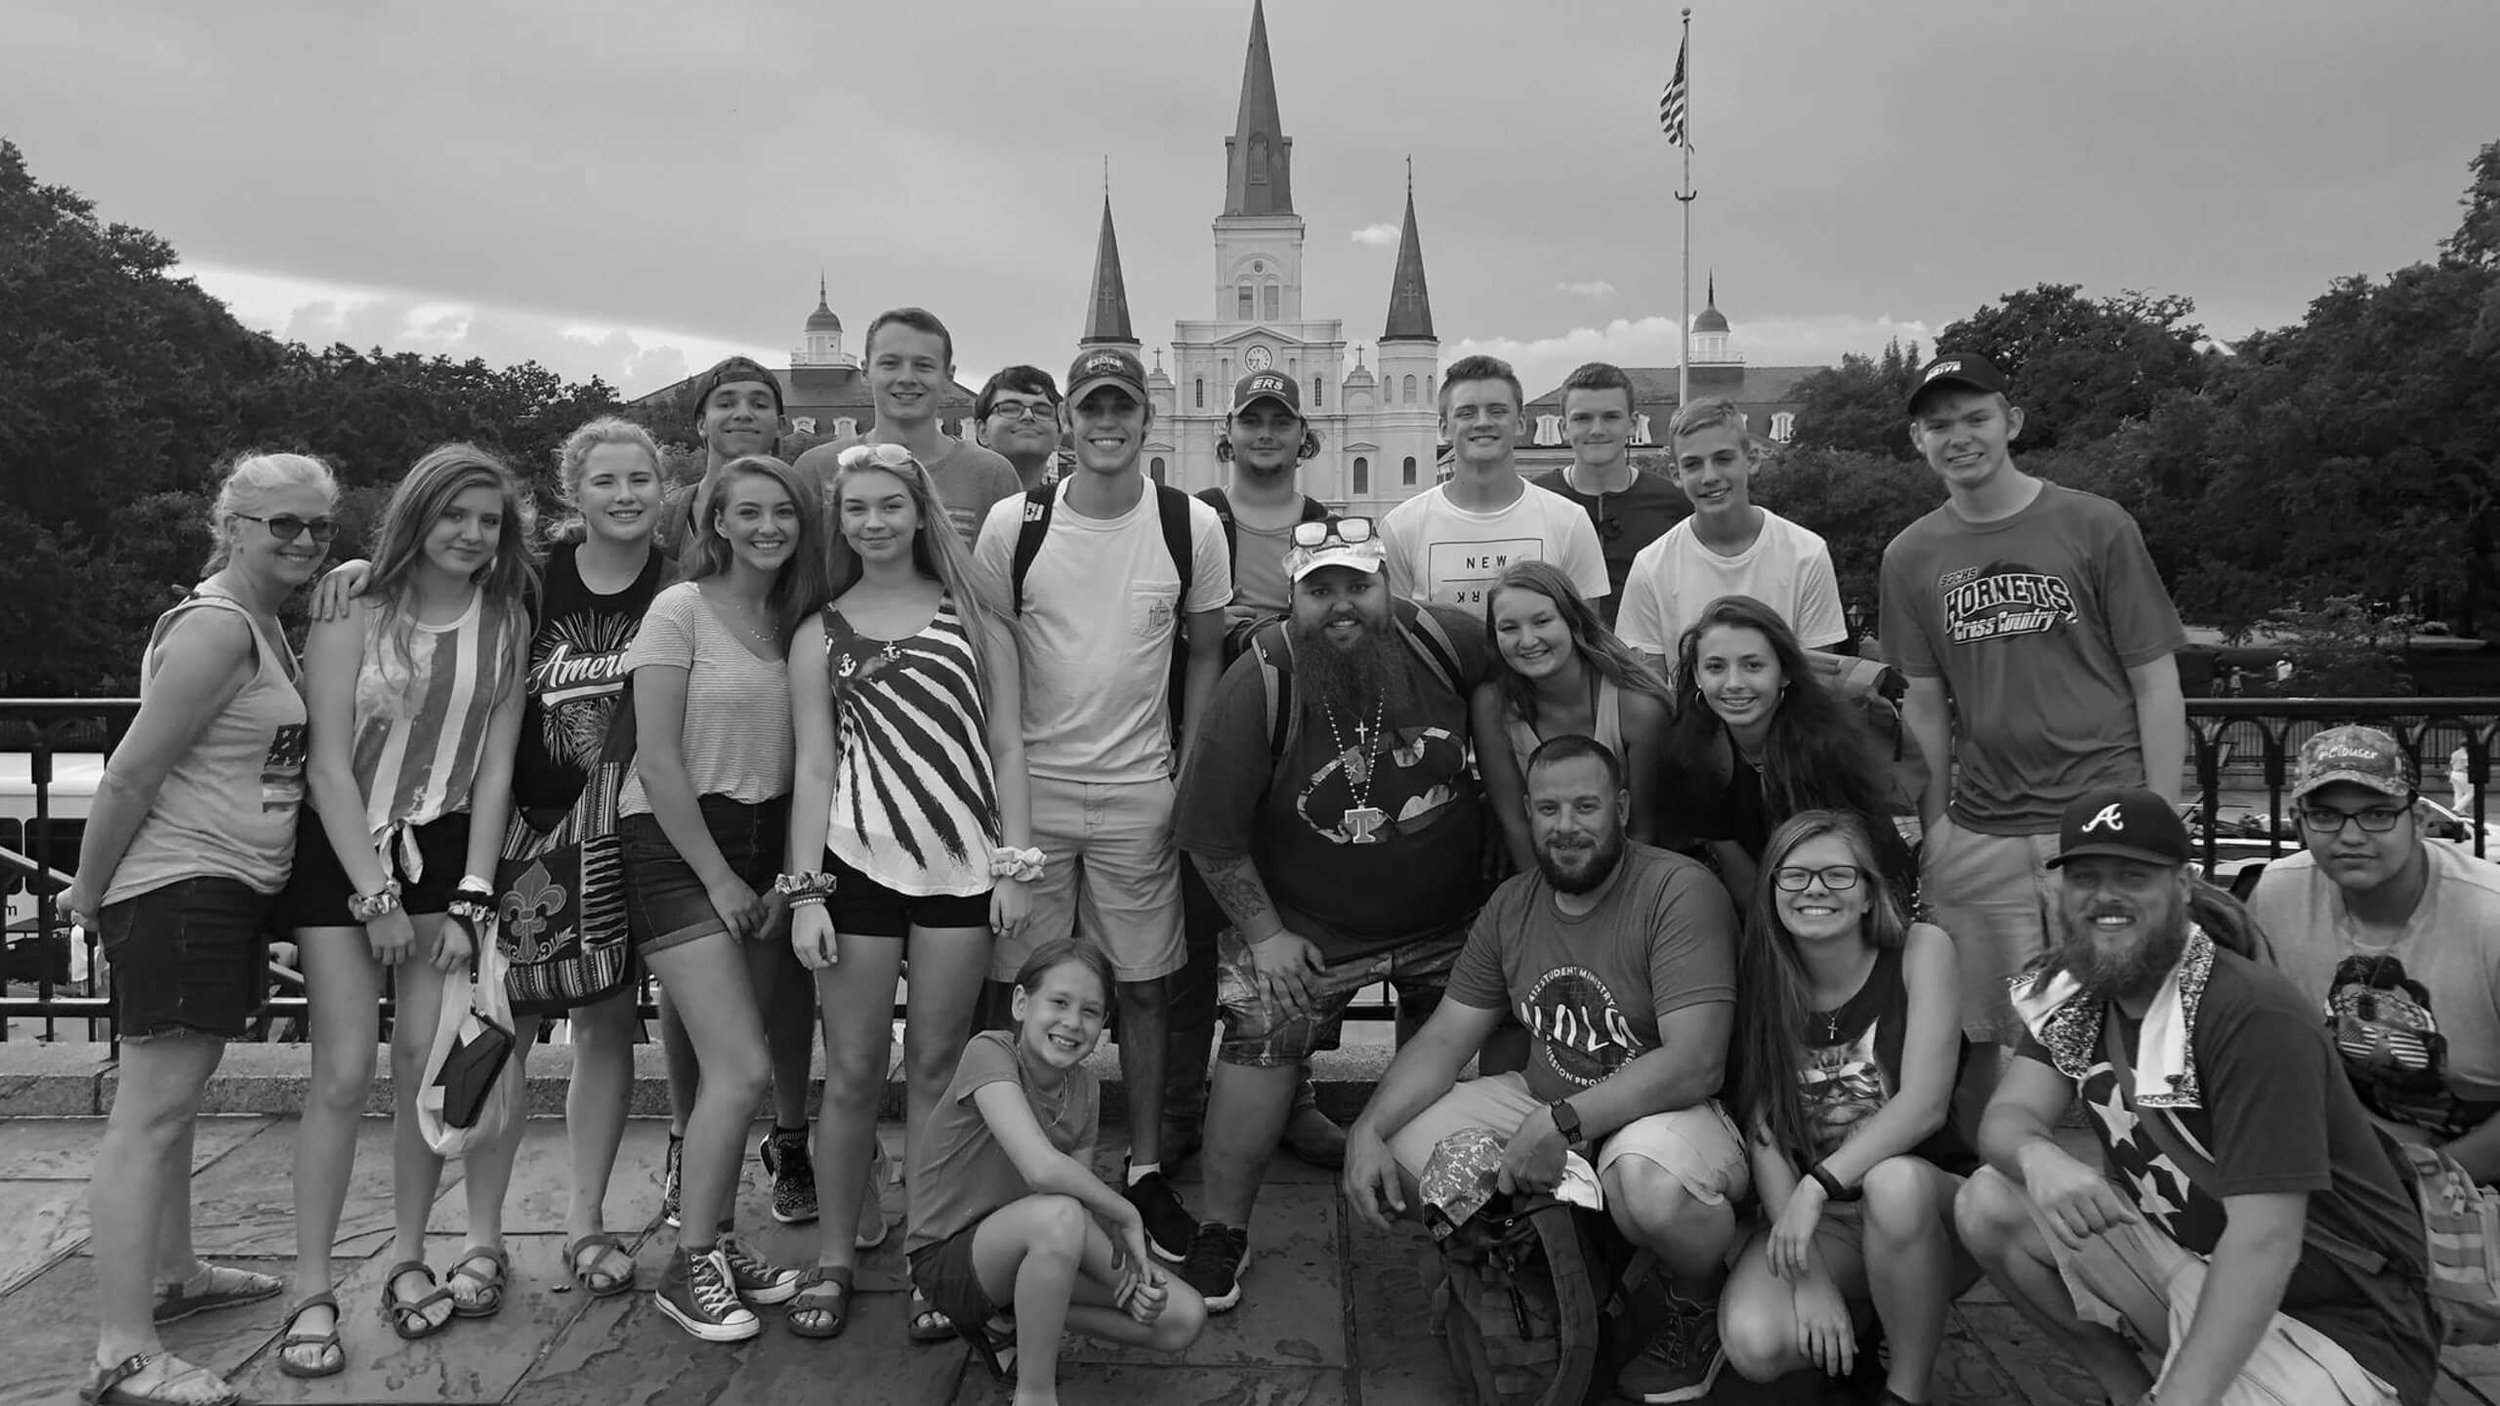 412 Student Ministry mission trip at Journey Church in Jackson TN